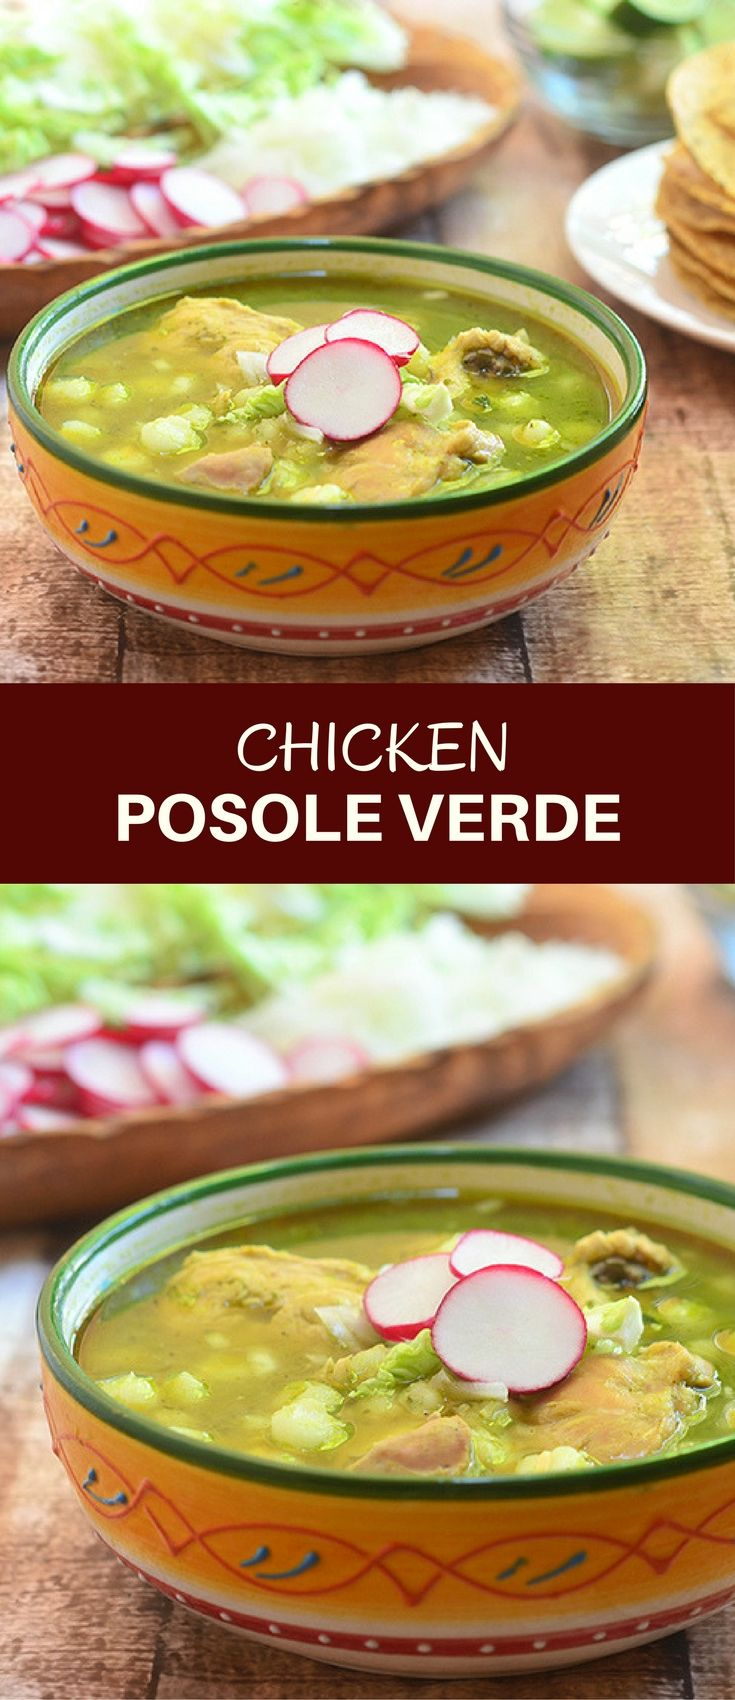 Mexican Chicken Posole Verde with tender chicken, hominy, and flavorful tomatillo sauce is a hearty soup bursting with Mexican flavors. Serve with crunchy tostadas and all the trimmings for a satisfying meal!